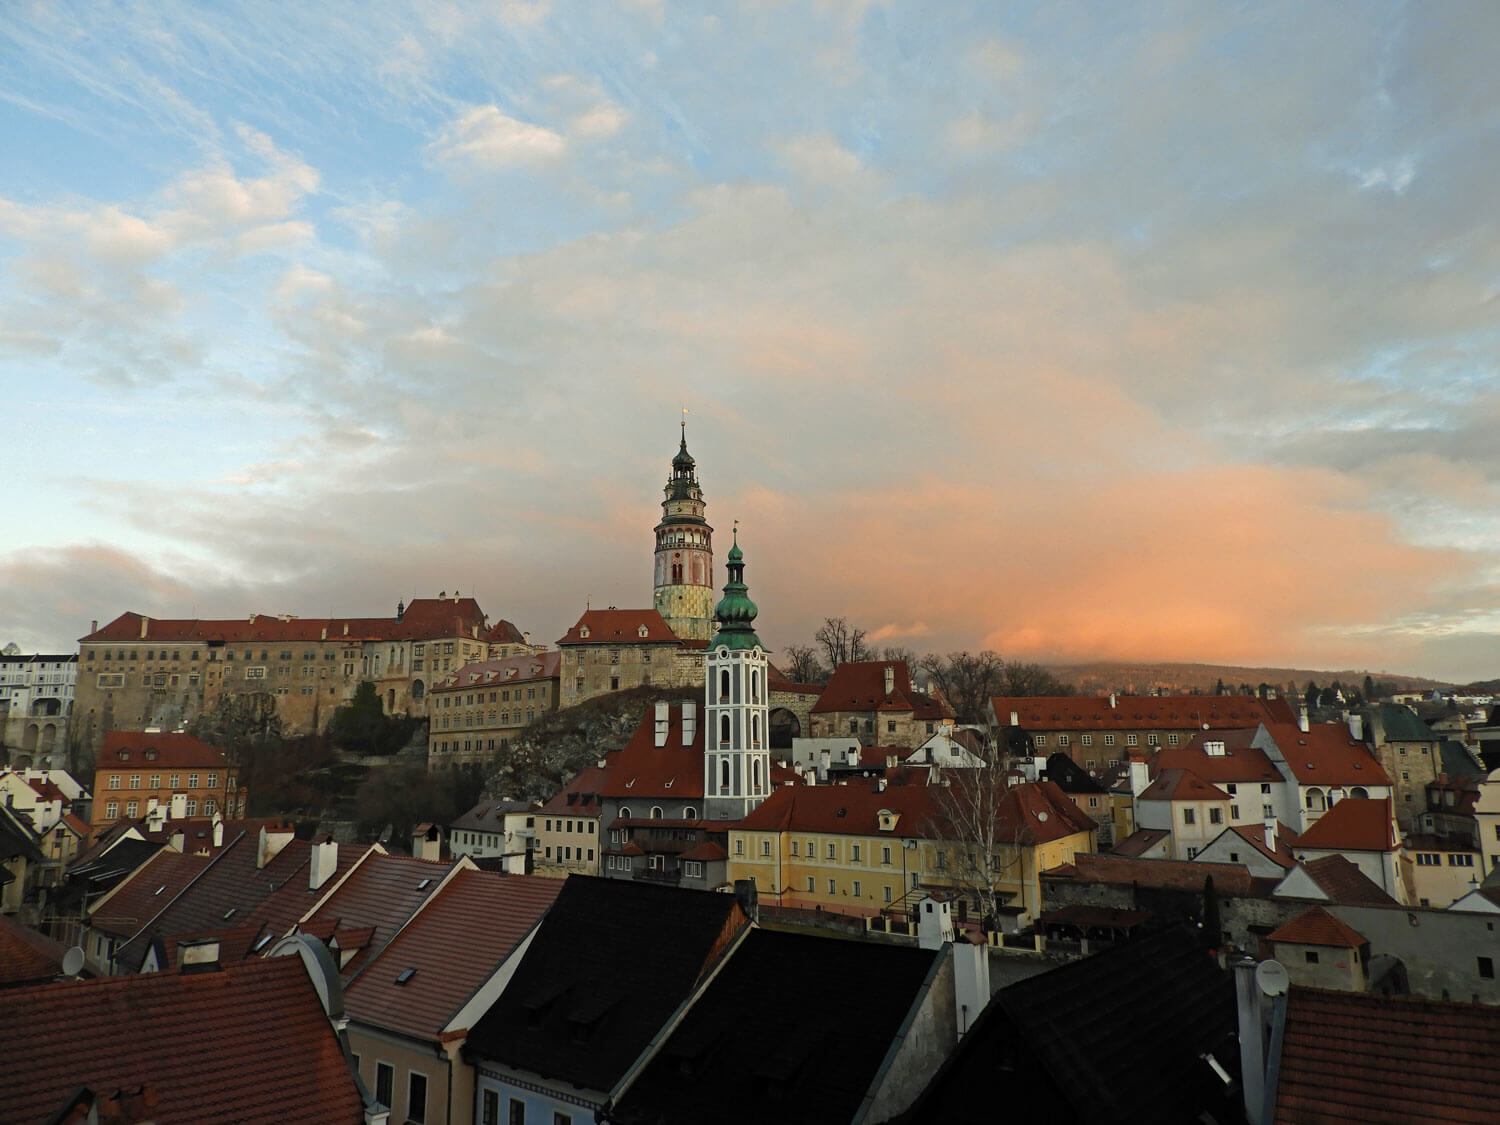 czech-cesky-city-town-sunrise-morning-sky.jpg